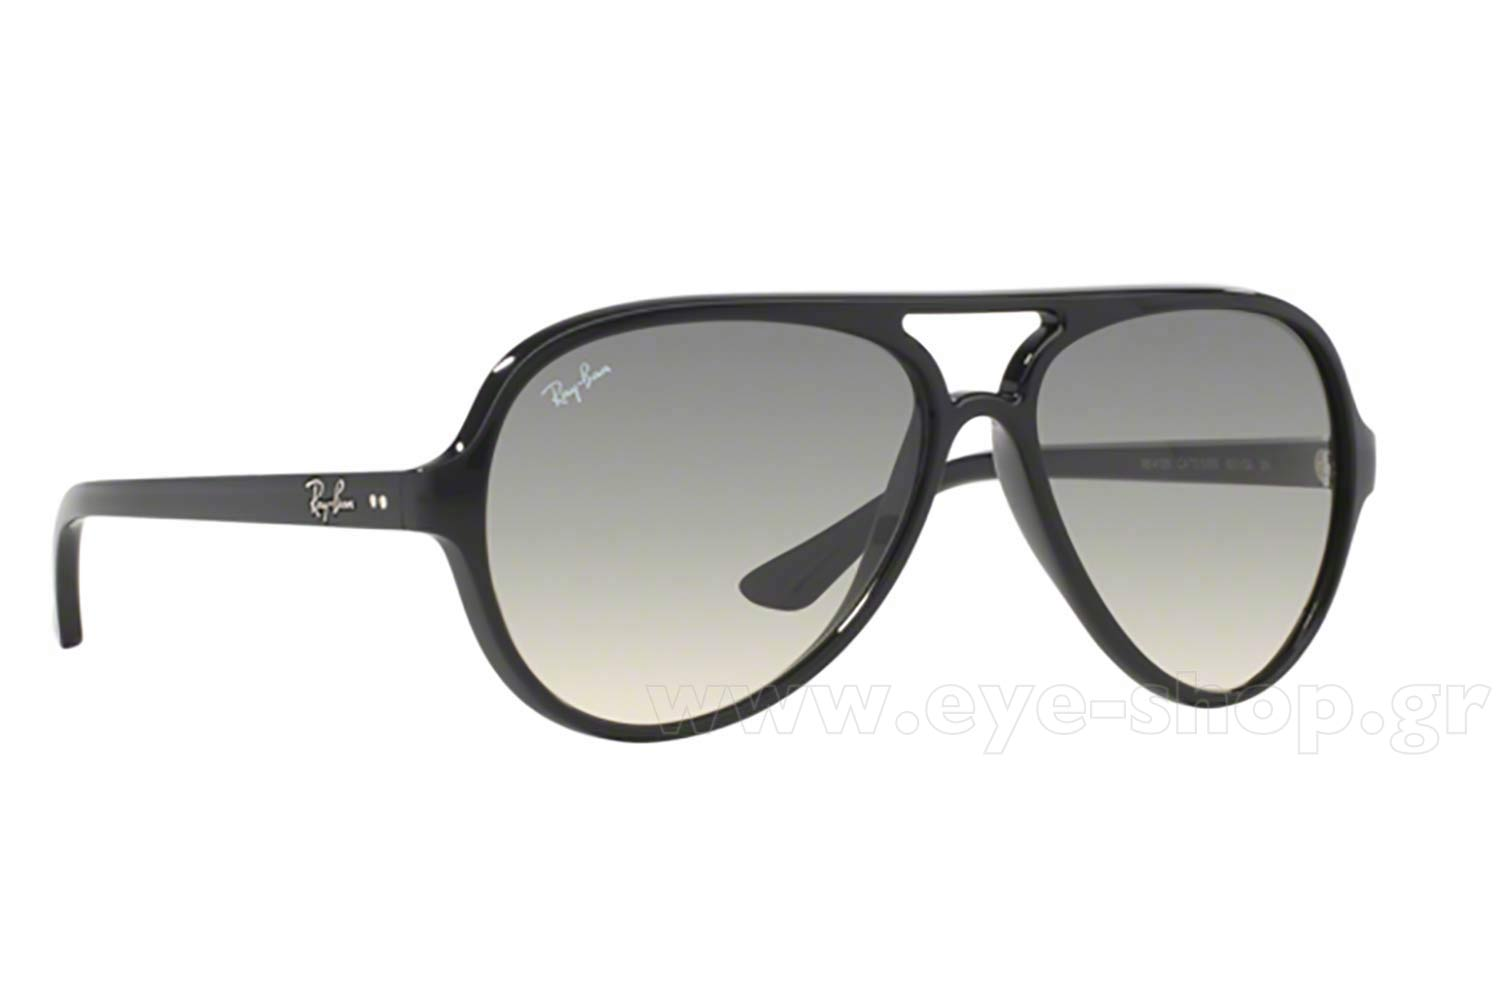 Aviator , color Black plastic , lenses gray gradient glass glass. Enlarge  Colors OutOfStock. Add to Cart. Sunglasses Rayban 4125 CATS 5000 ... 54d90b19dabd